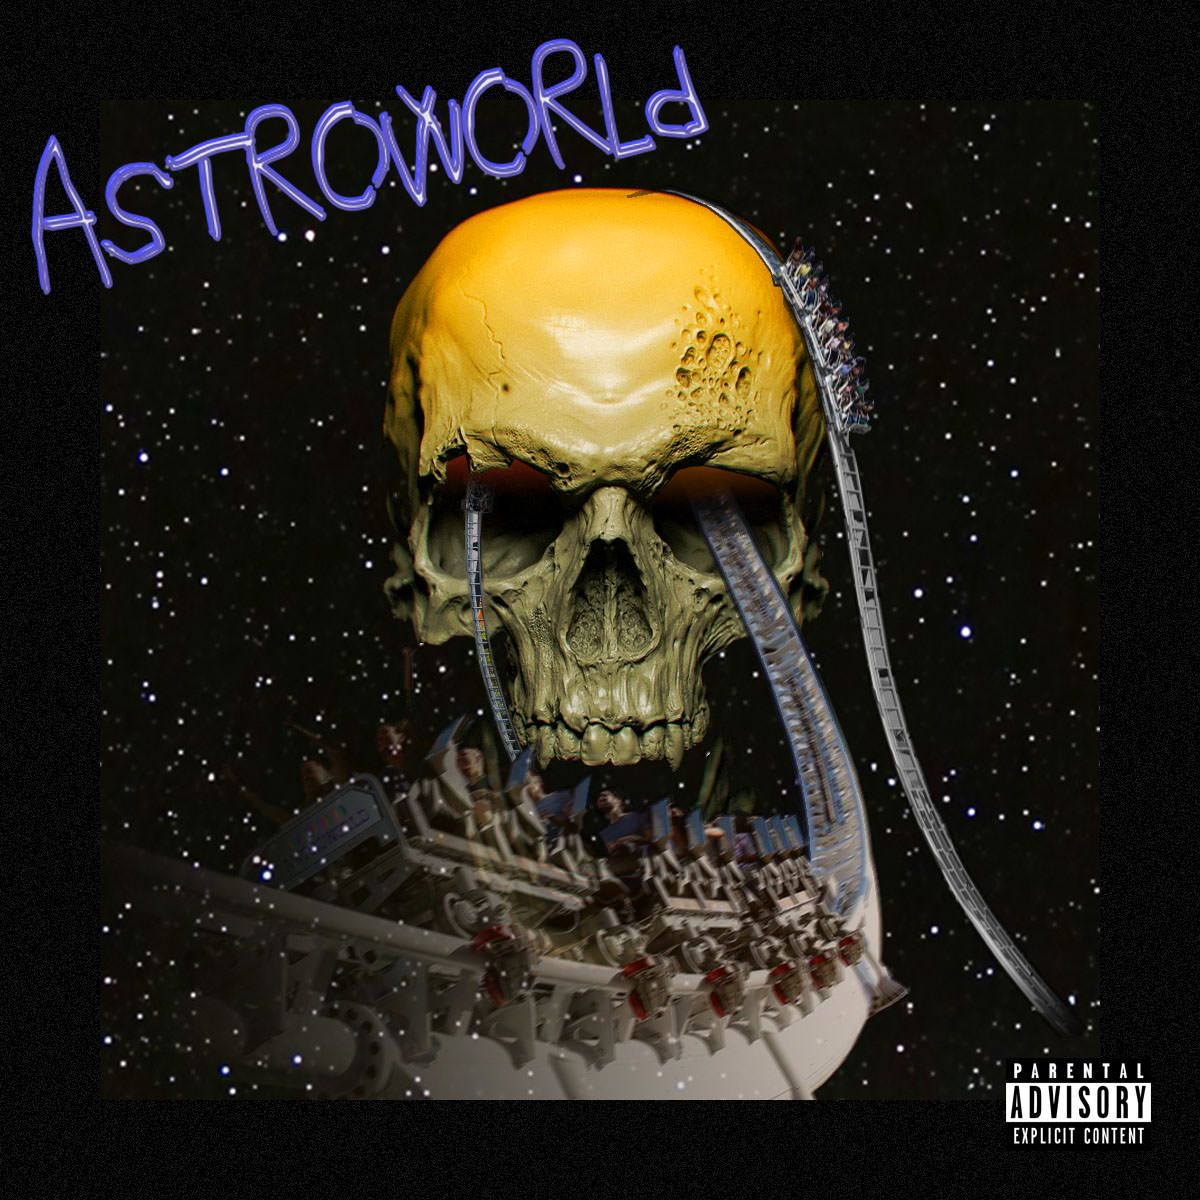 Astroworld Travis Scott Album hd